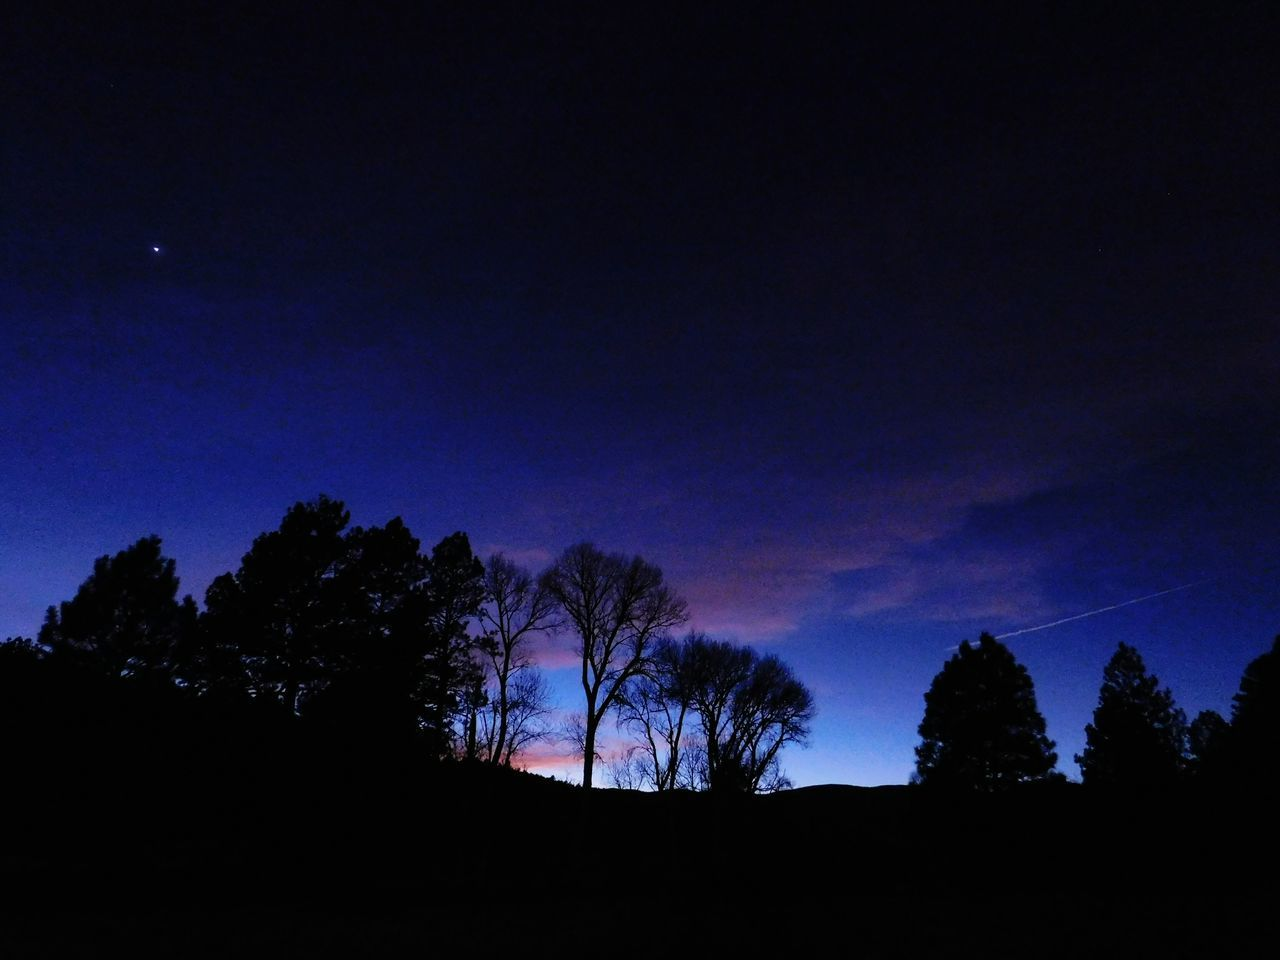 Night Silhouette Beauty In Nature Low Angle View Sunset Newmexicosunset Newmexicoskies Newmexicosunsets Newmexicophotography NewMexicoTRUE Newmexicoskys Newmexicomountain Cloud - Sky Rural Scene Silhouette Tree Beauty In Nature Scenics Dramatic Sky